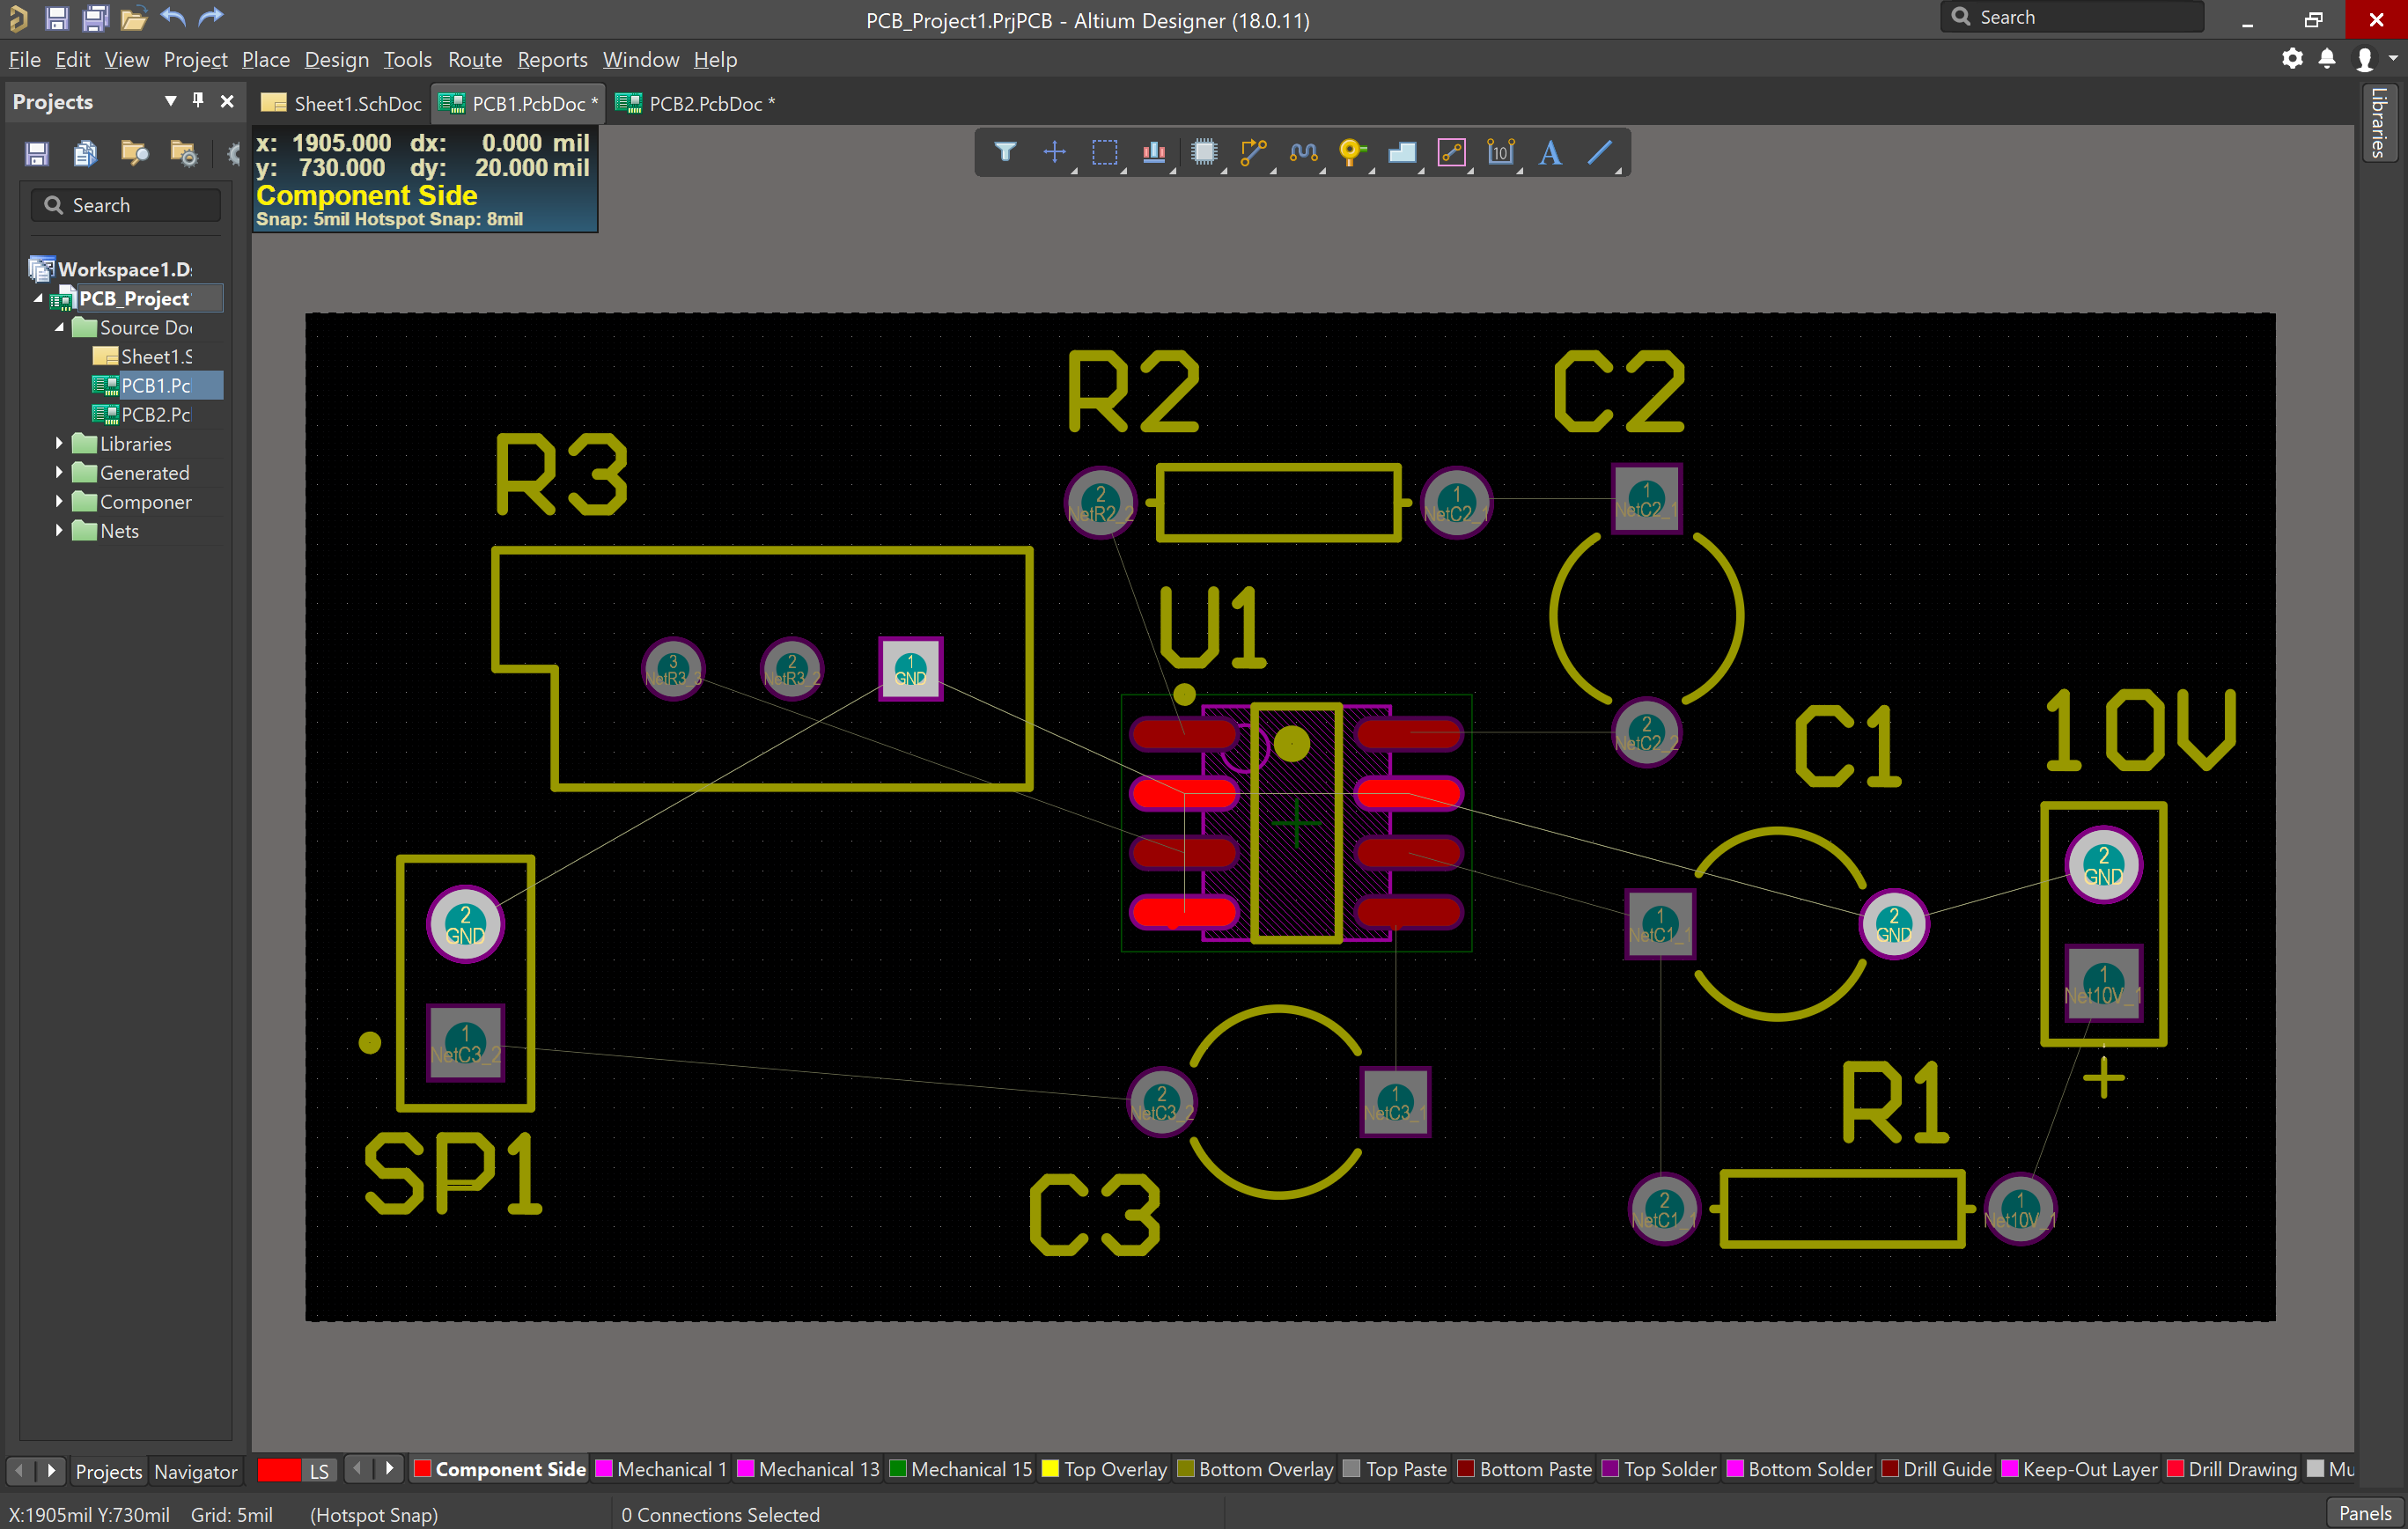 Placed components on PCB document in Altium Designer